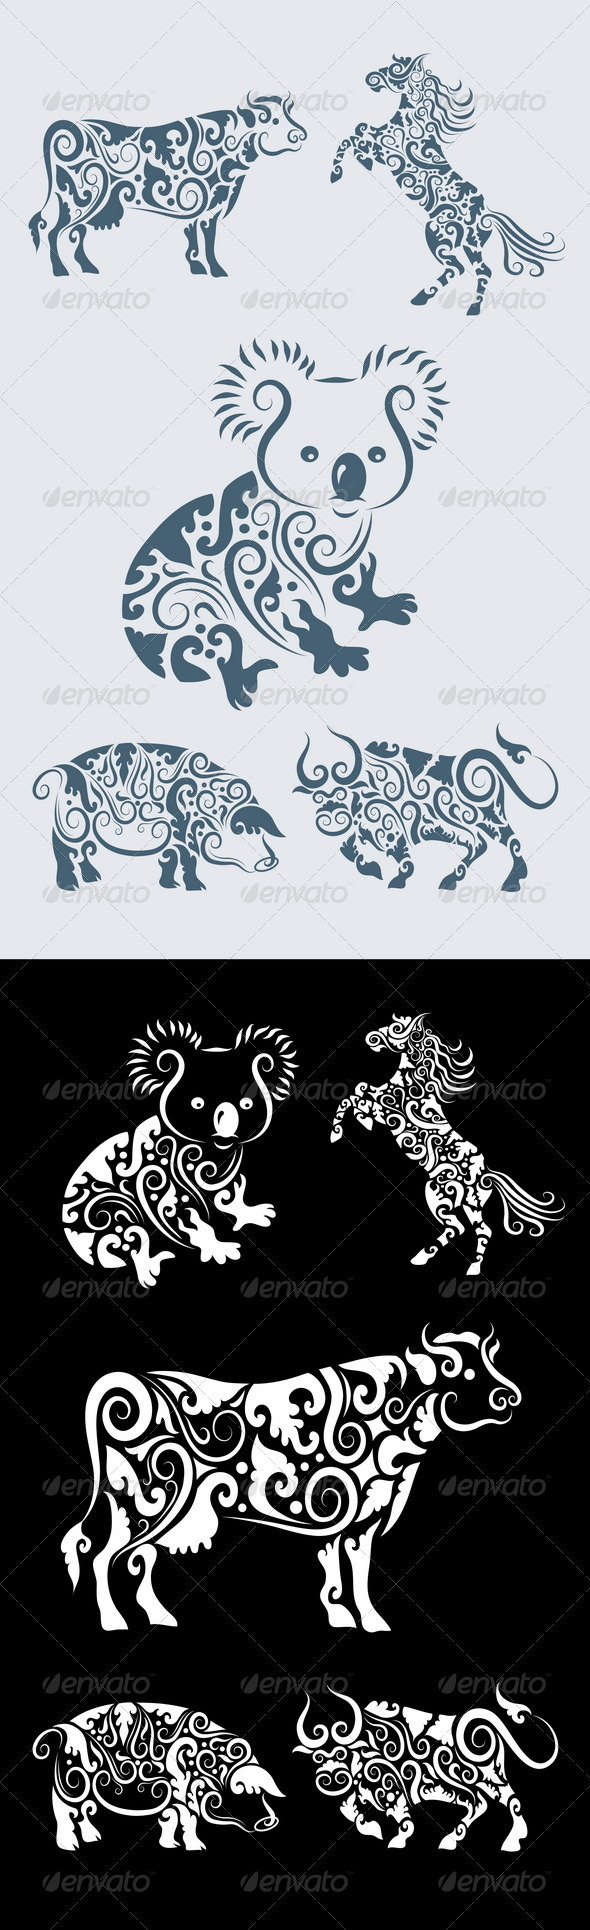 GraphicRiver Koala ornament and friends 5 animal ornaments 2802168